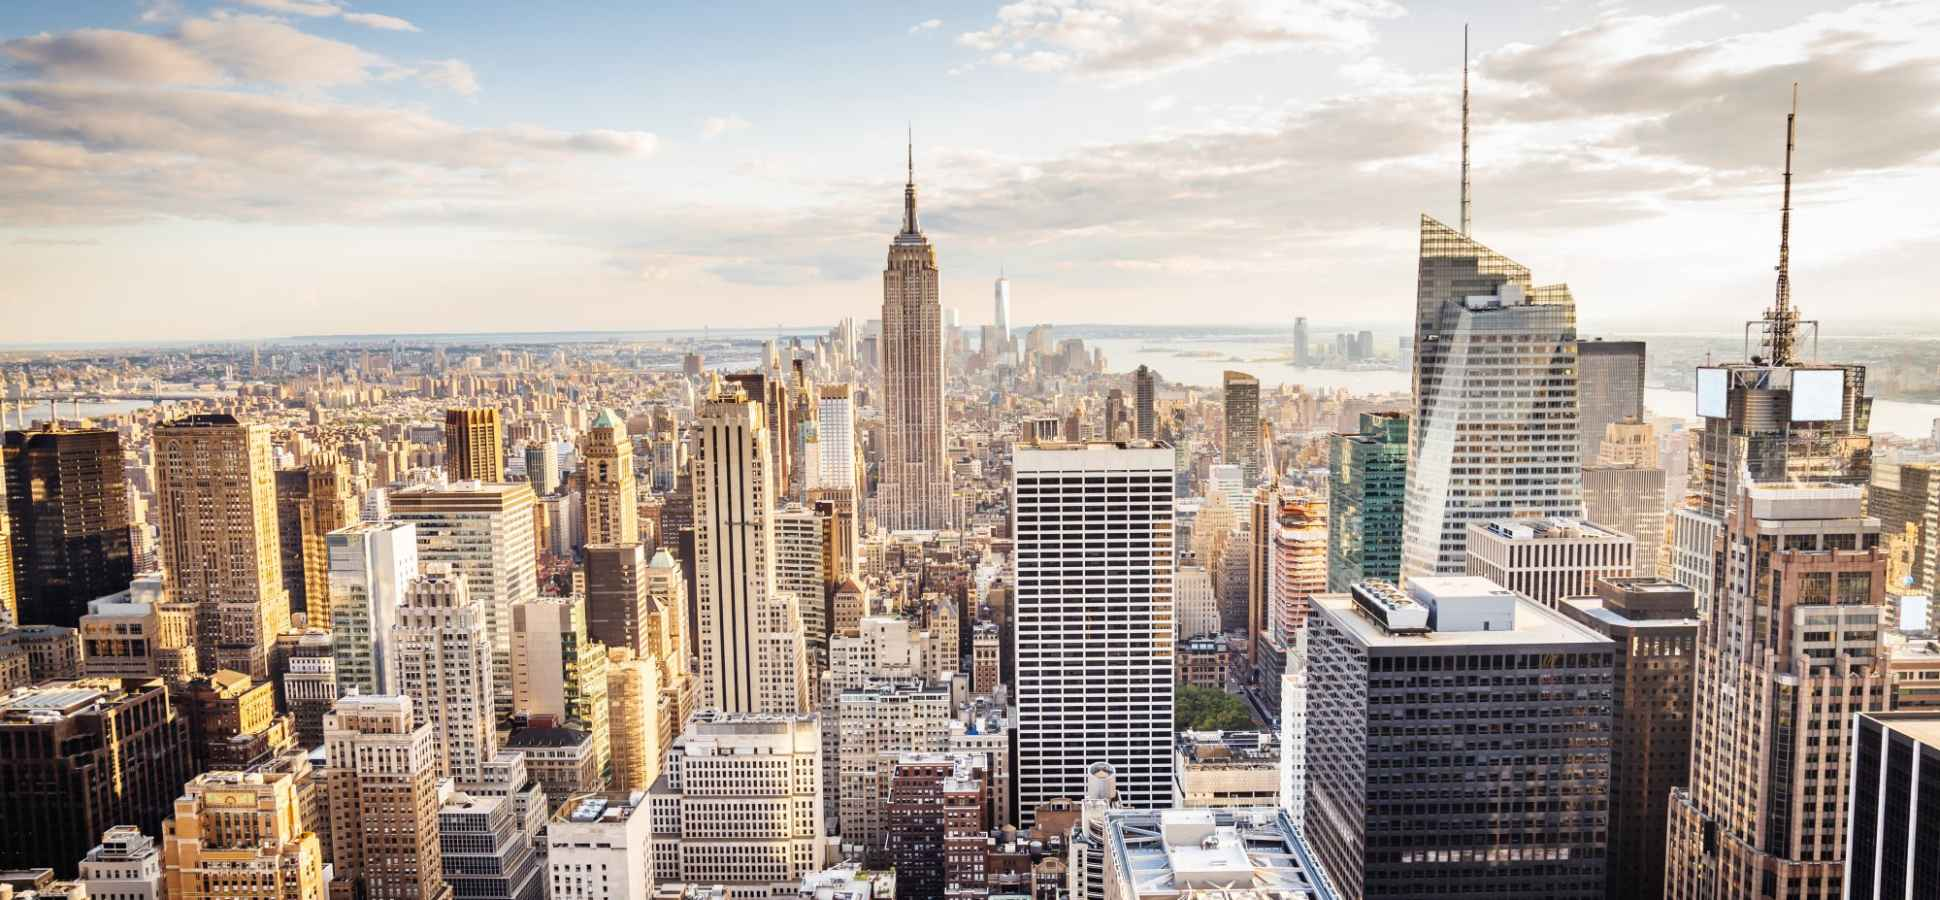 Blue apron office nyc - Mattresses Makeup And Meal Kits Top 10 Nyc Startups To Watch In 2017 Inc Com